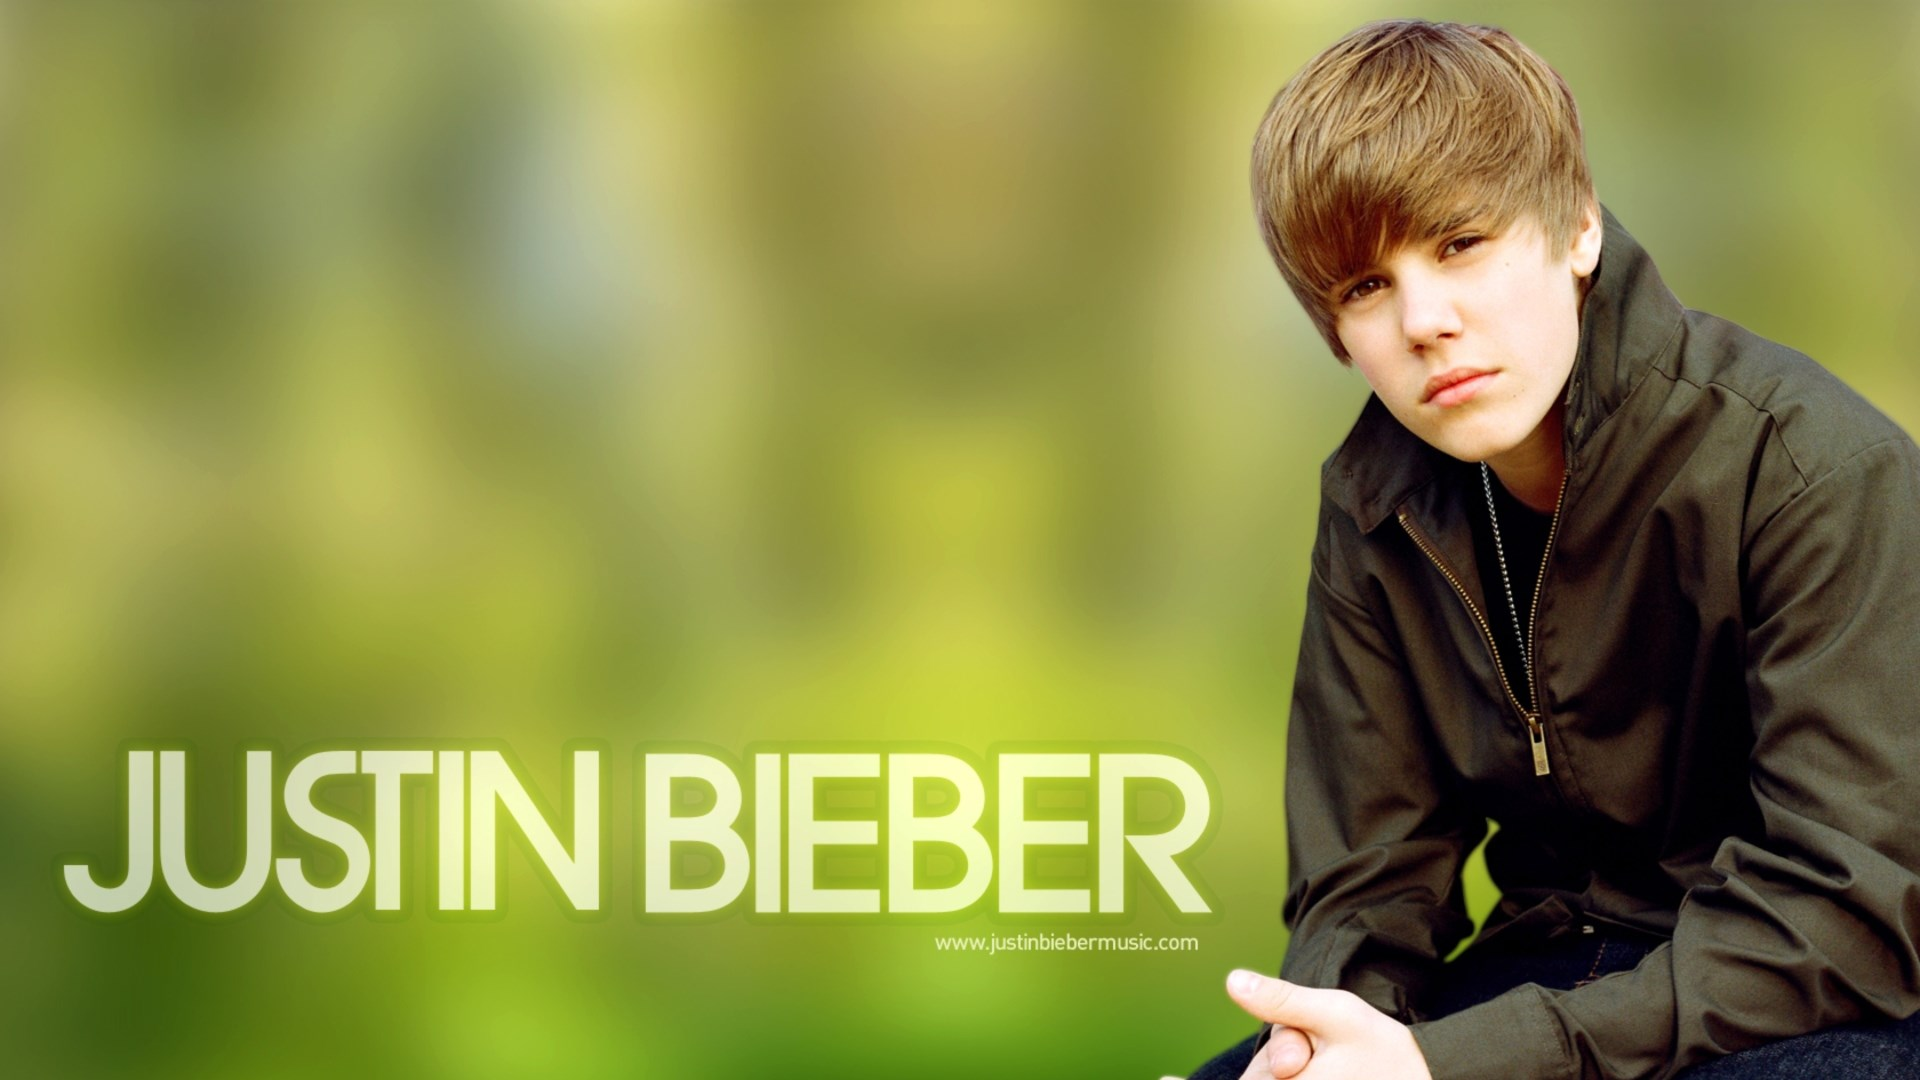 free-and-screensavers-for-justin-bieber-Jackson-Little-1920-x-1080-wallpaper-wp3405967